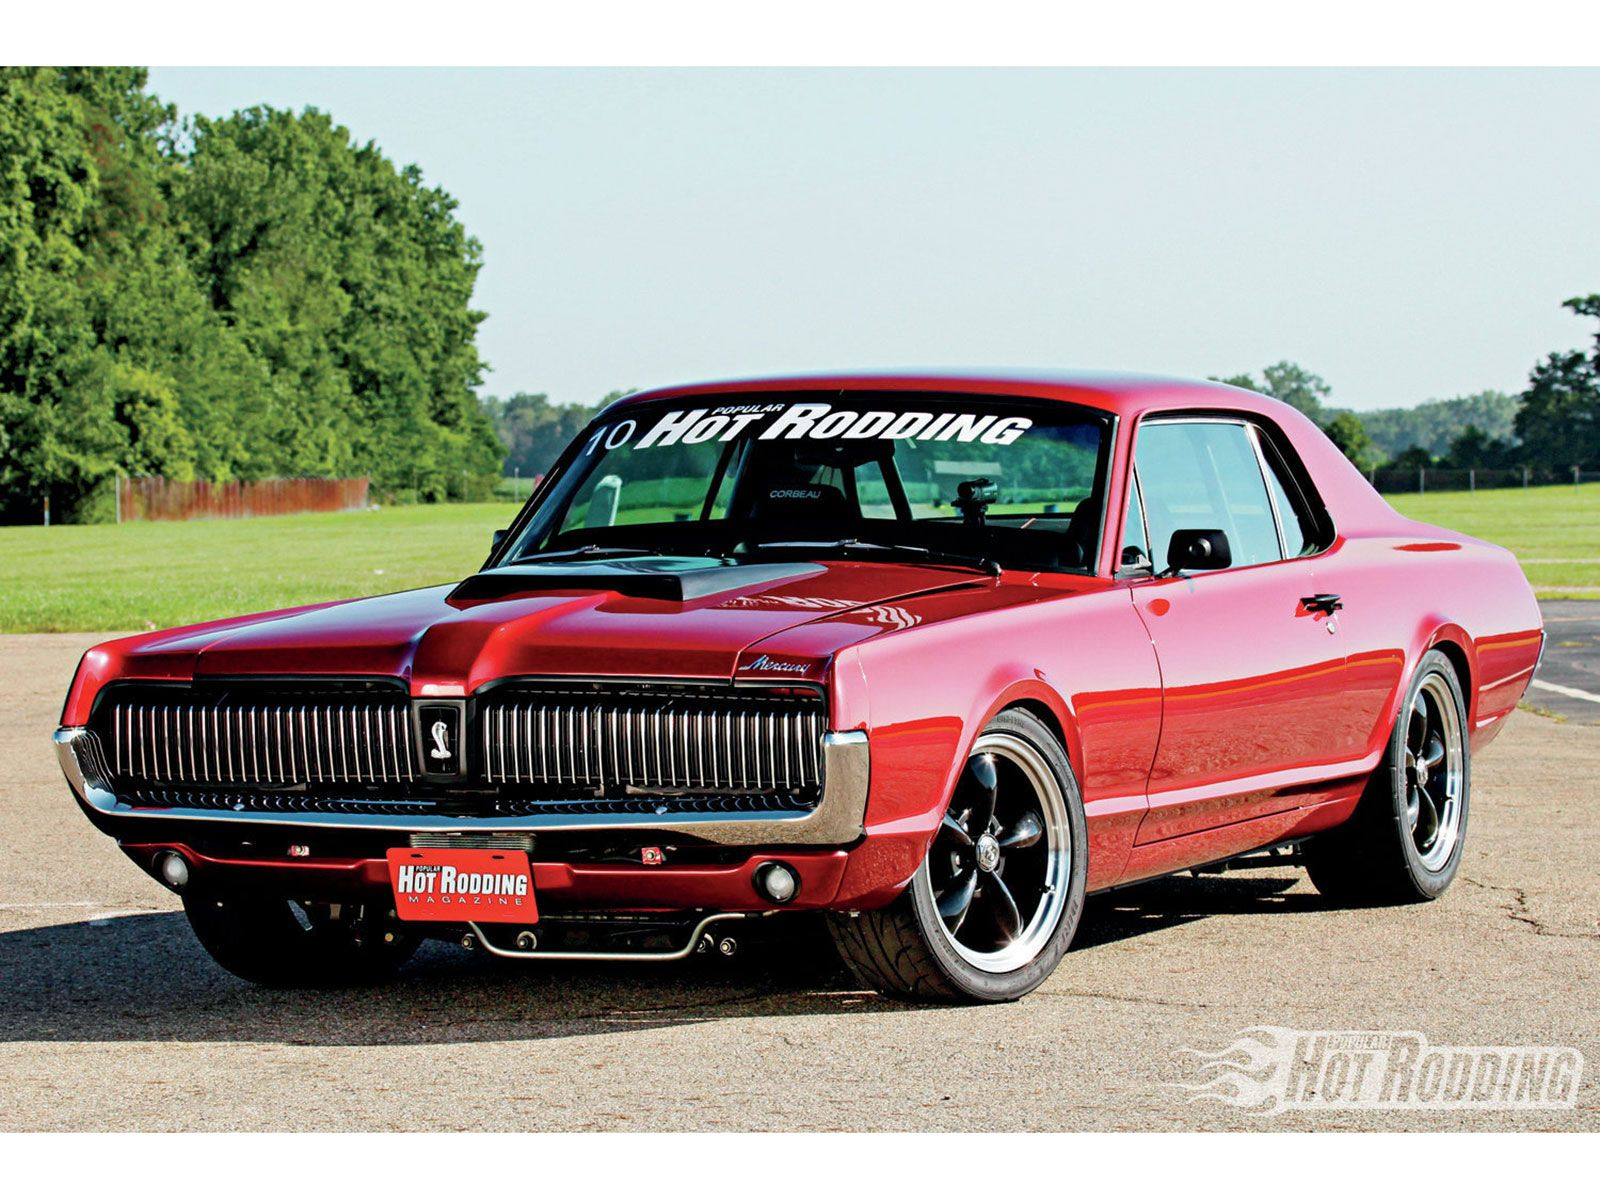 68 Mercury Cougar Pro Touring | Ford Mustang & Shelby | Pinterest ...